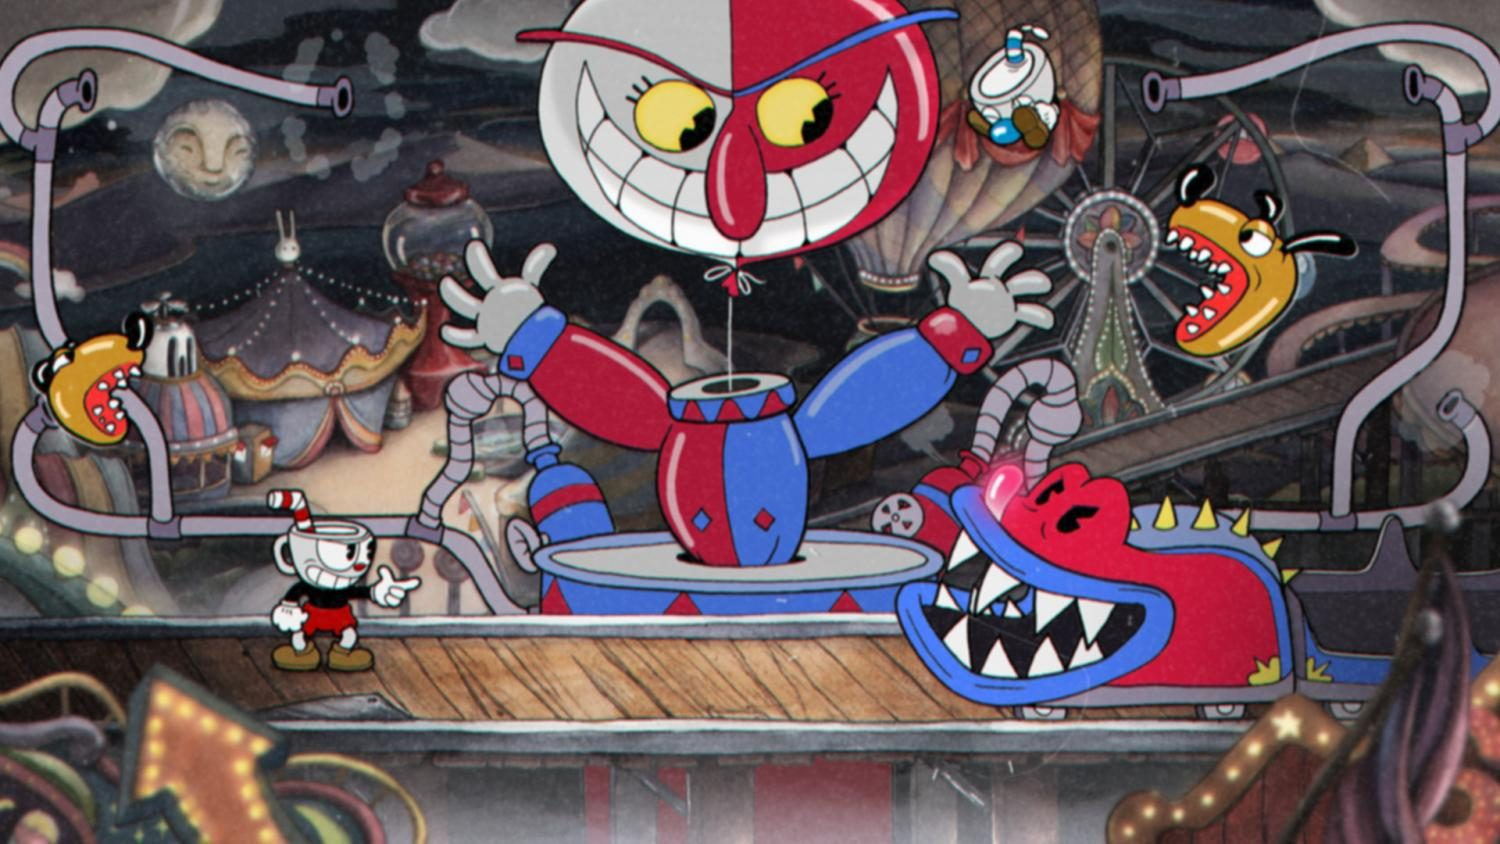 Cuphead+fights+a+monstrous+roller-coaster+that+has+come+to+life.+%0A%0AImage+from+steam.com